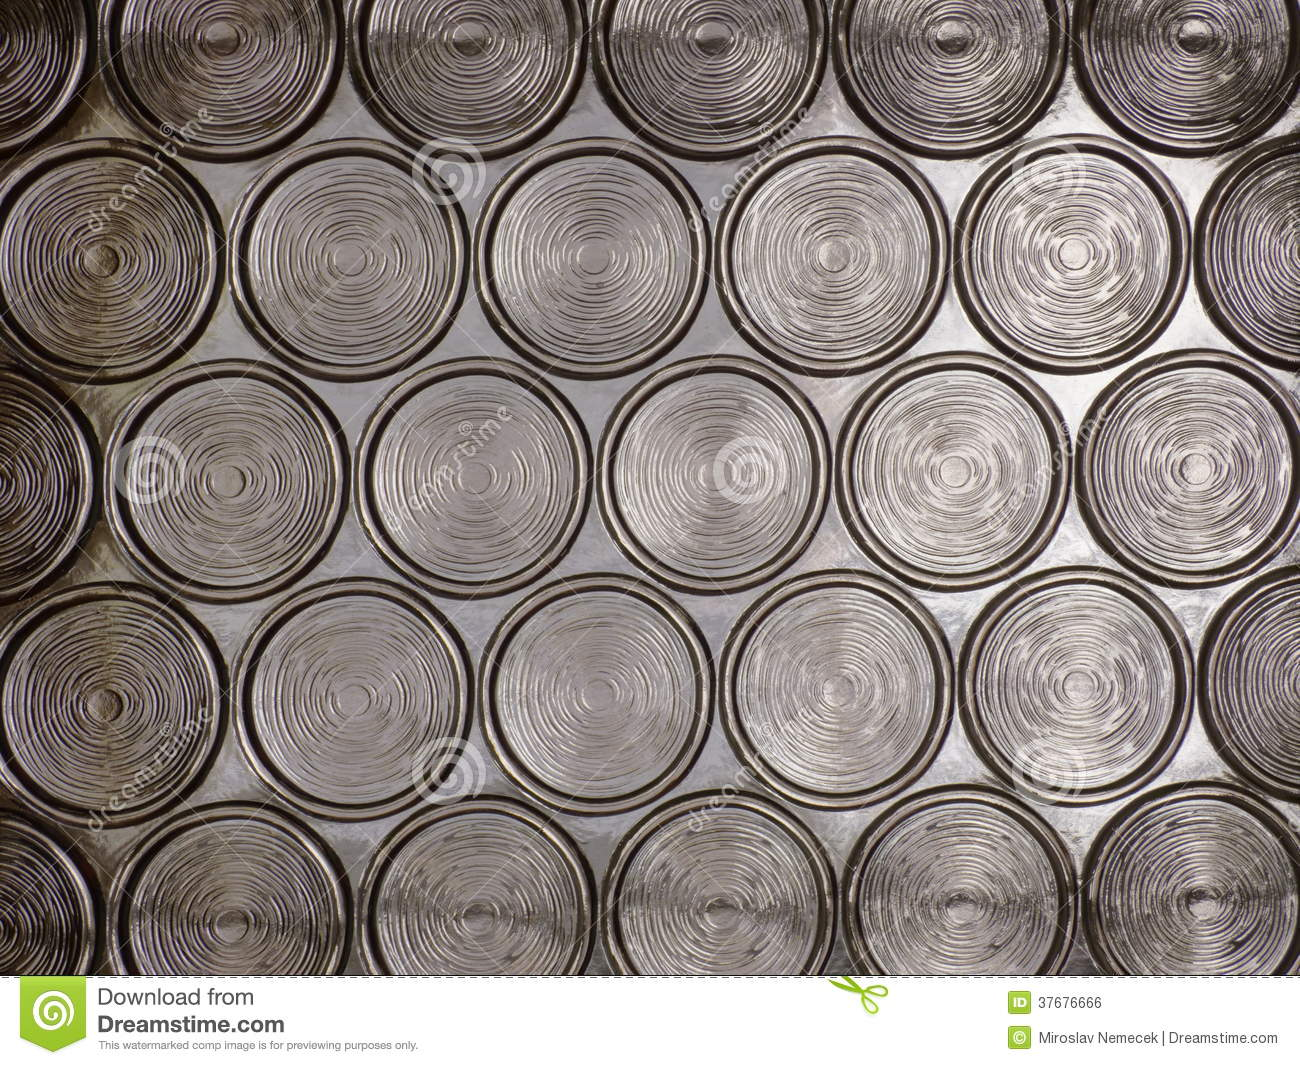 Circle Translucent Glass Texture Royalty Free Stock Image